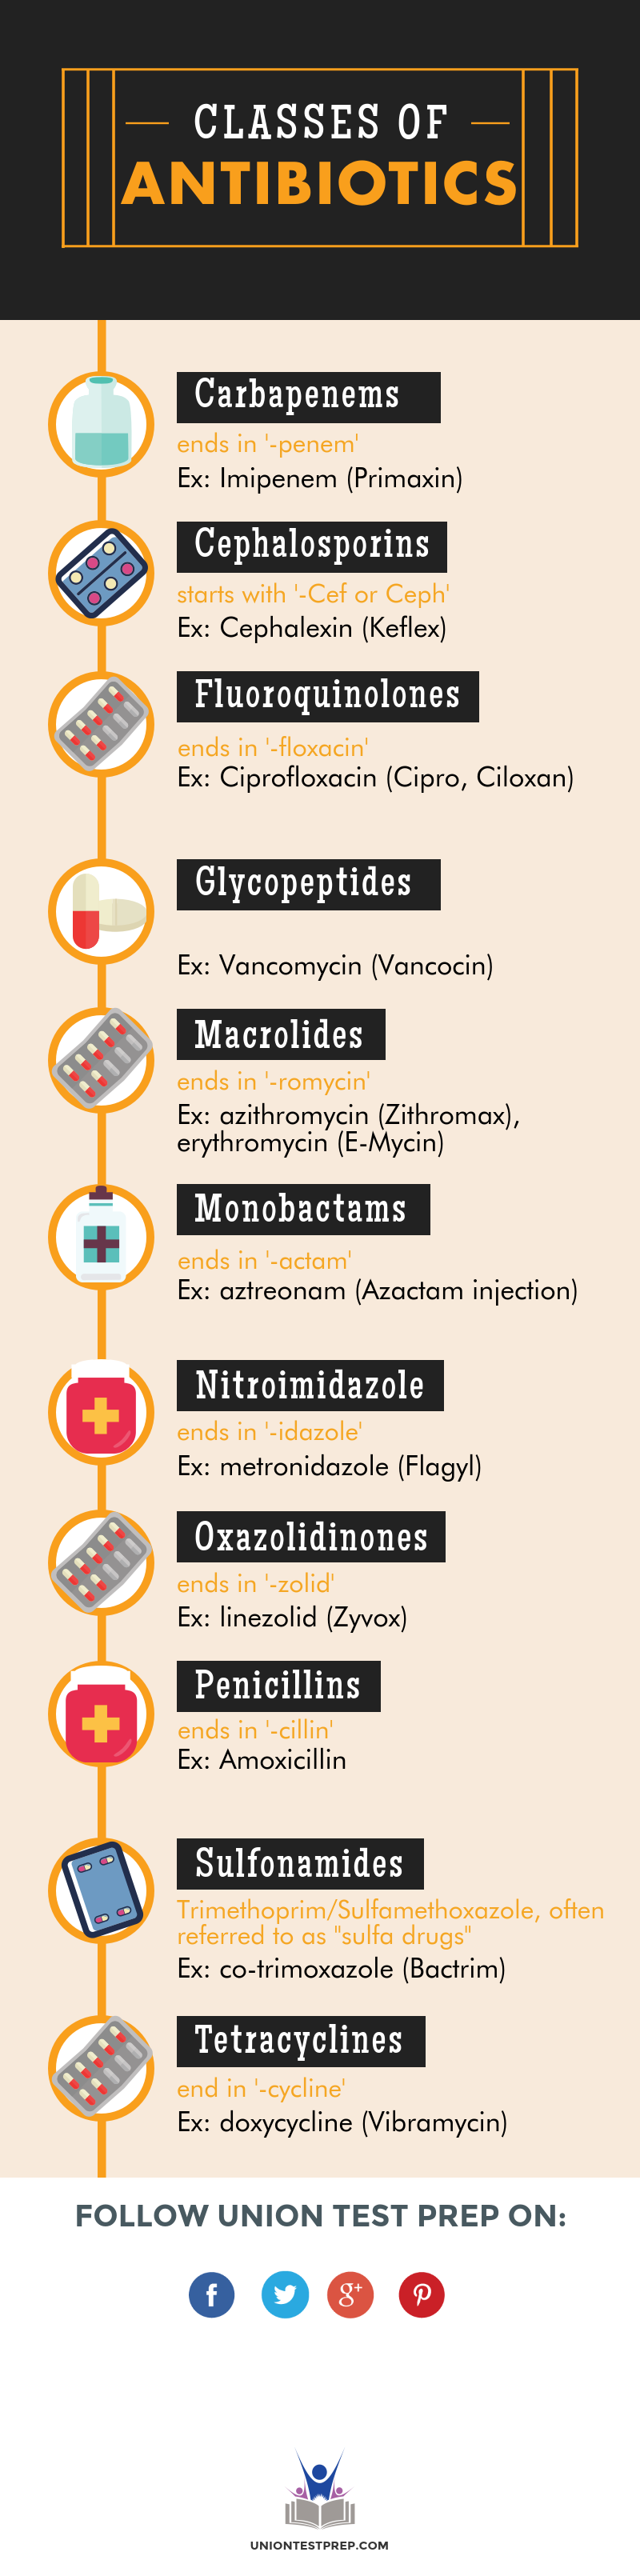 classes of antibiotics